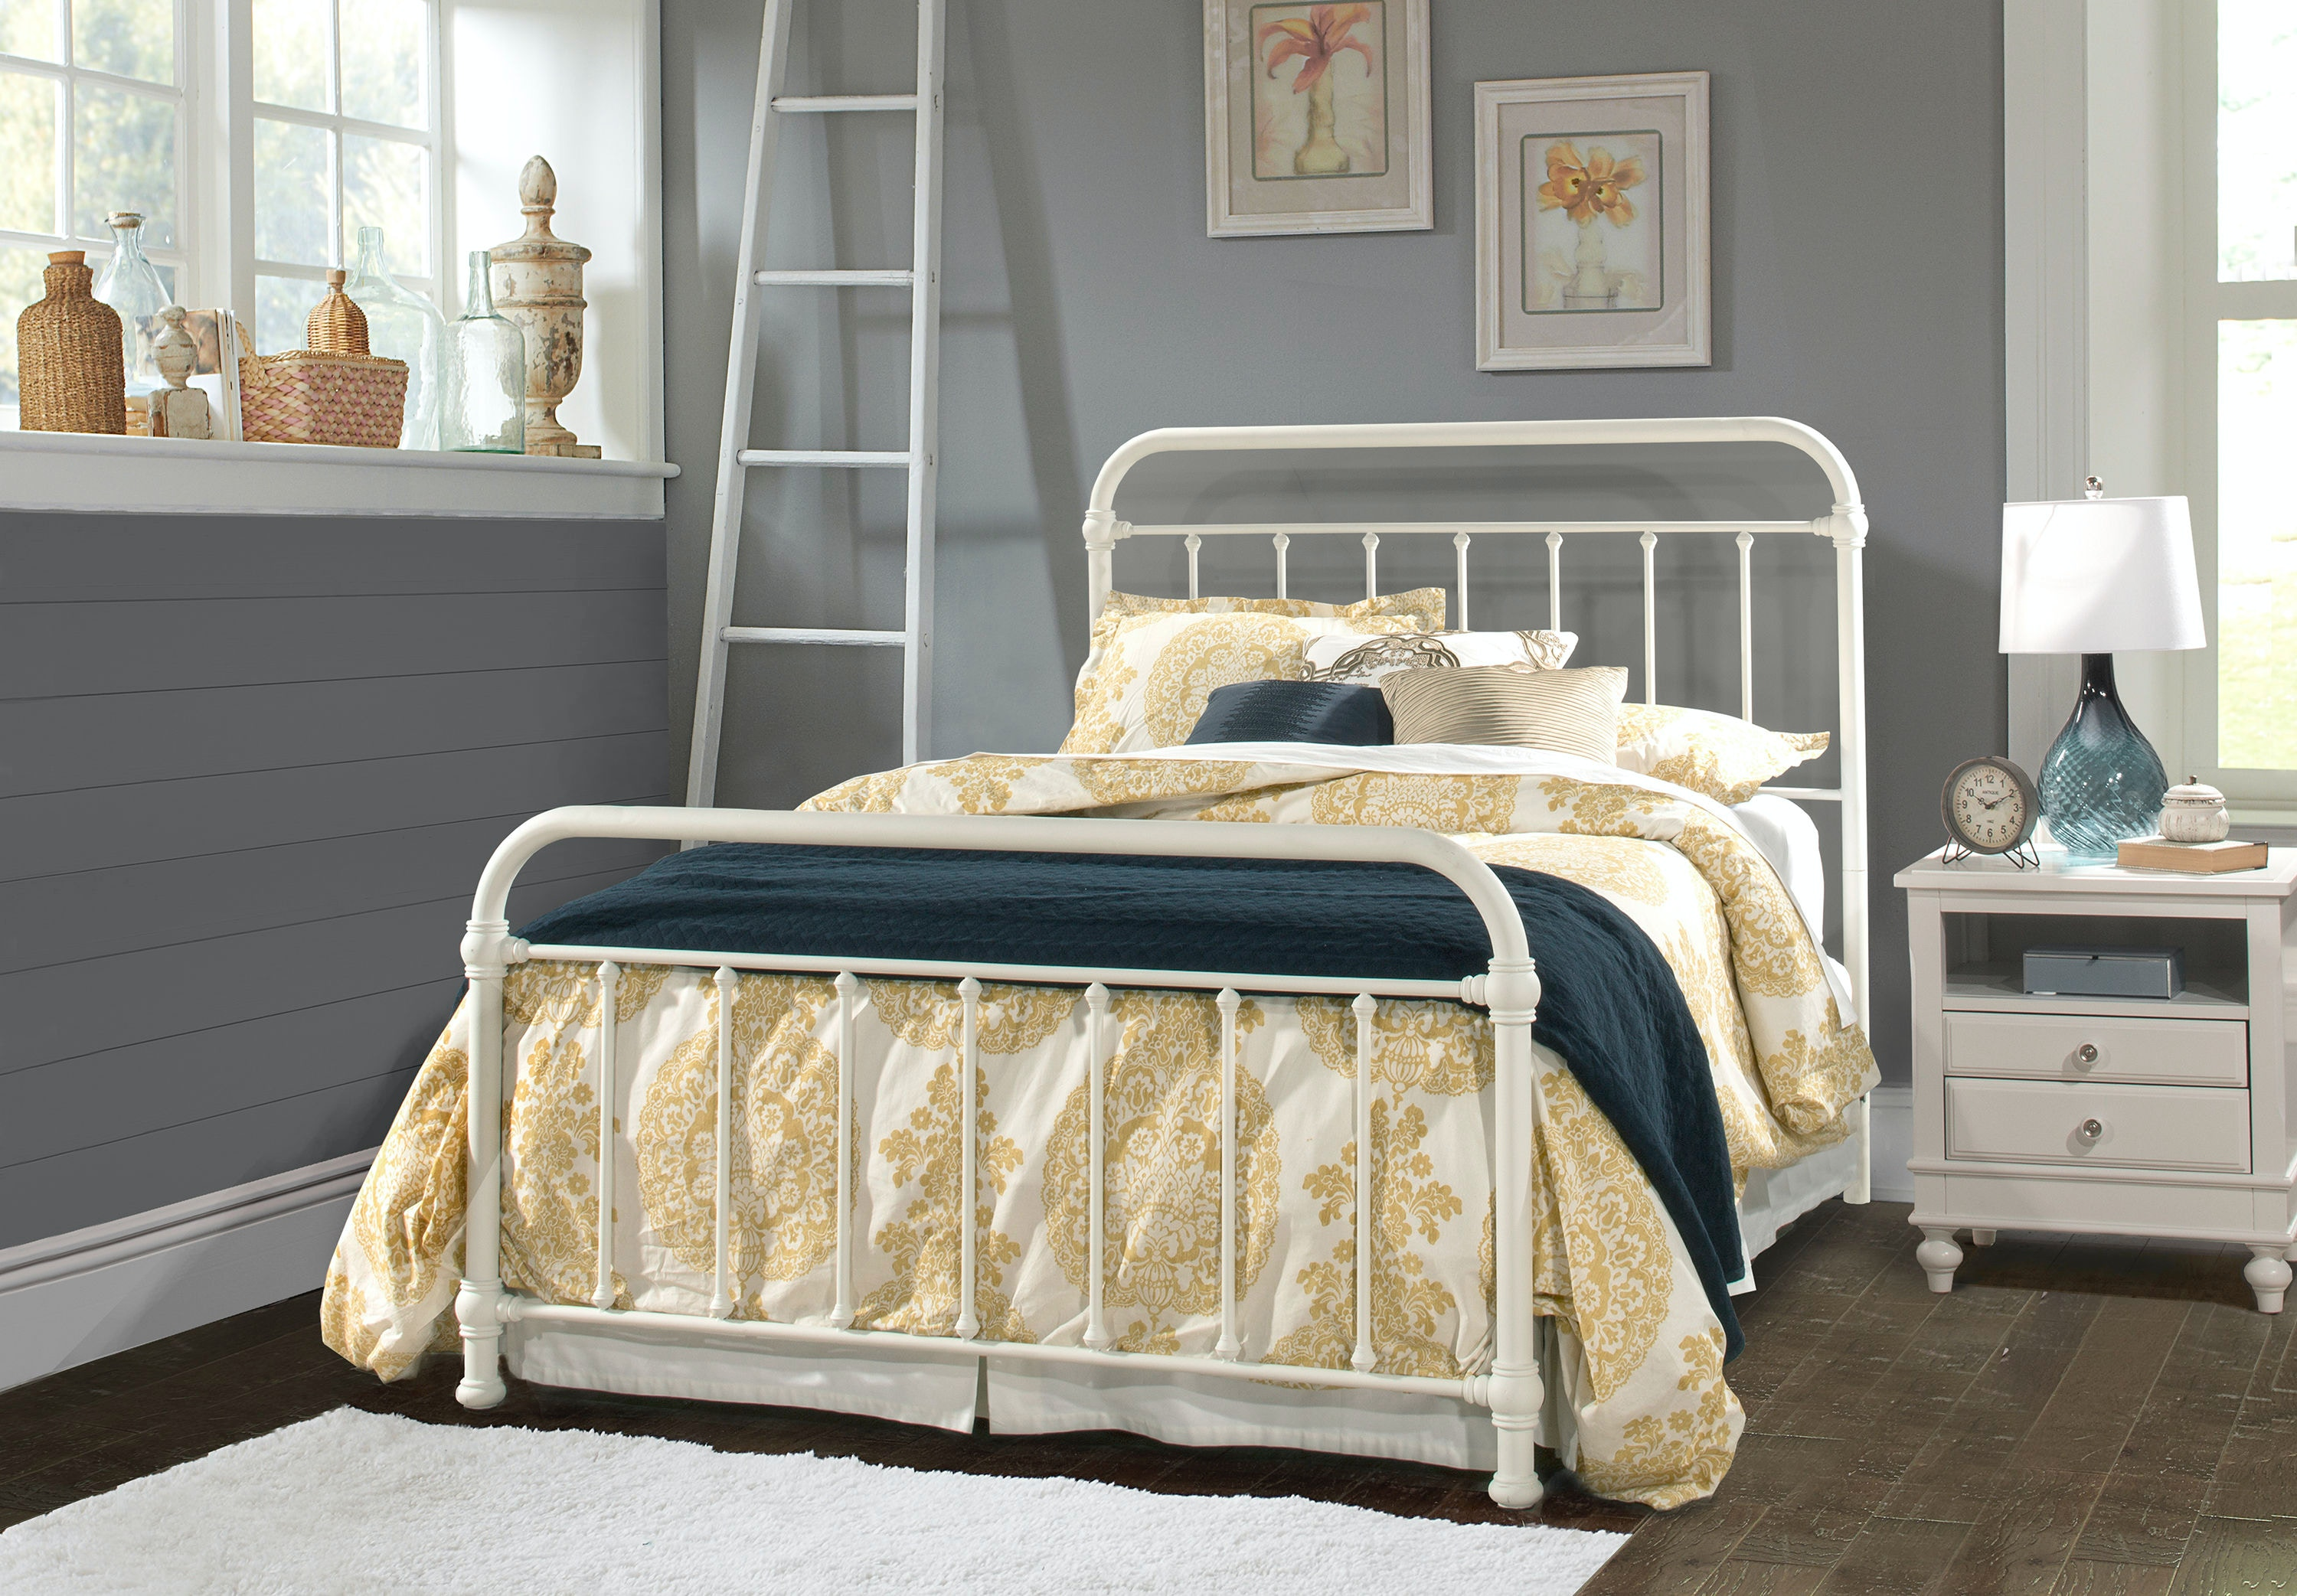 Hillsdale Furniture Kirkland Bed Set   King 1799 660 Available To Order At  Flemington Department Store